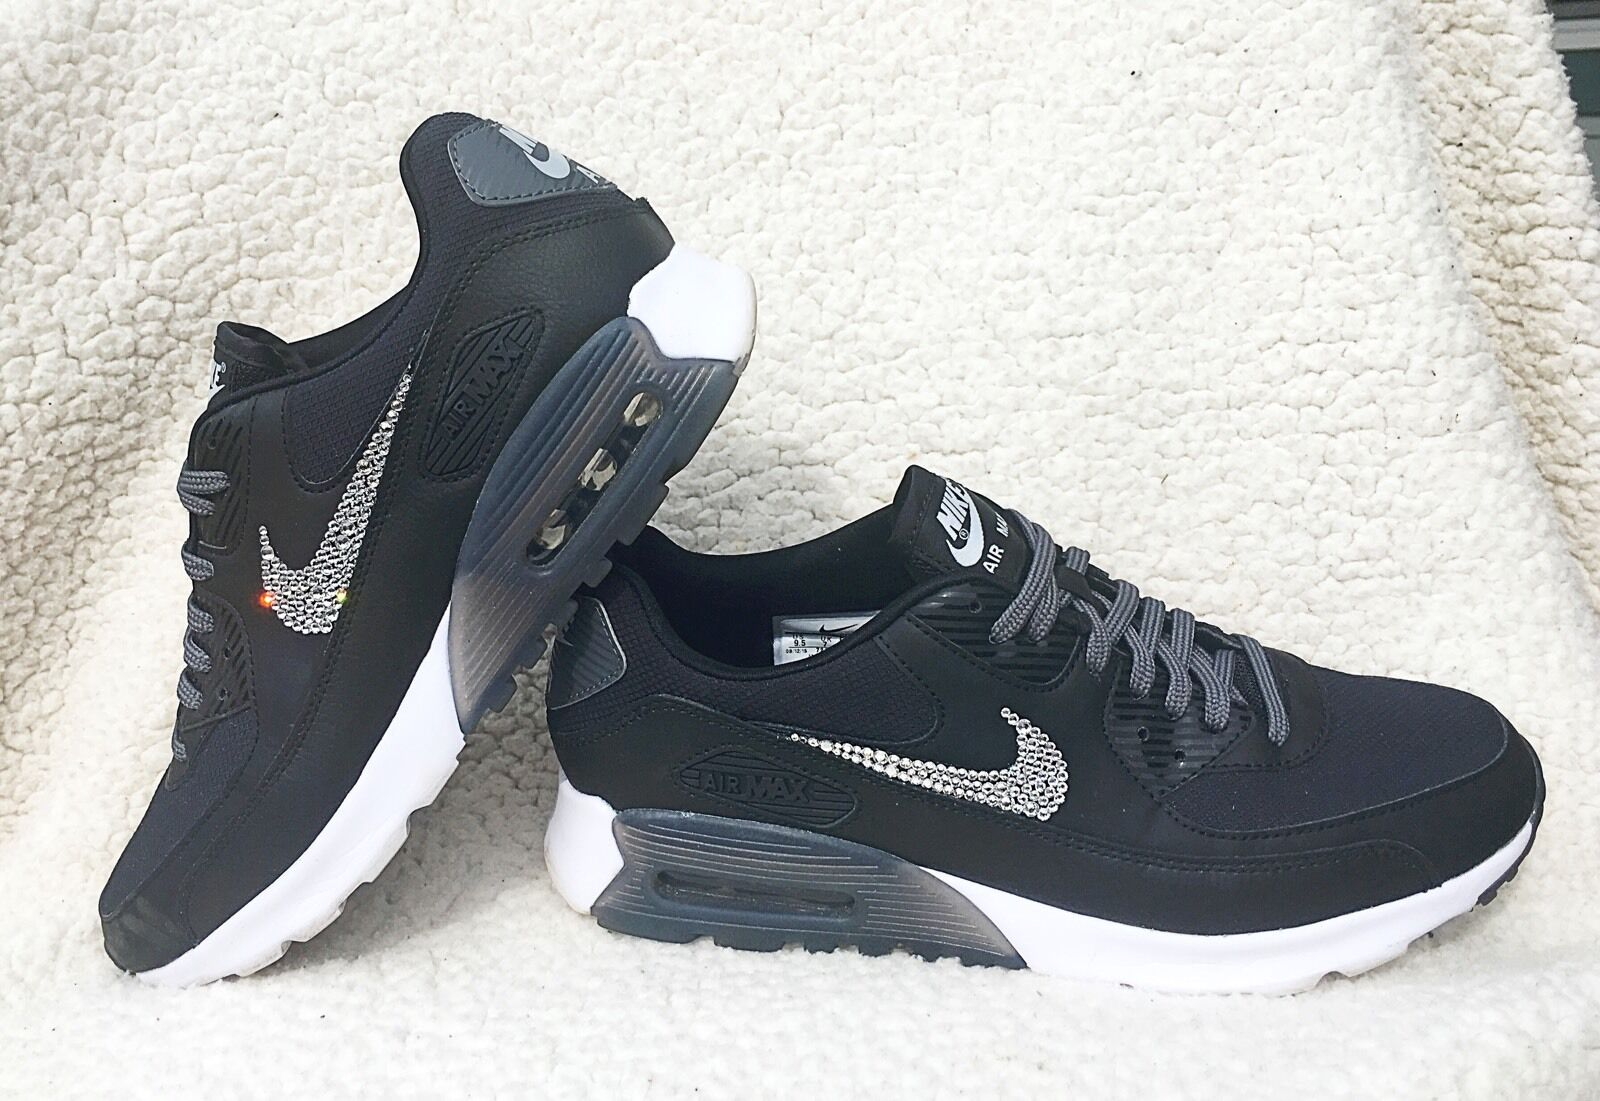 Womens Nike Air Max 90 Ultra Essential Black Nikes W Swarovski Crystals Bling